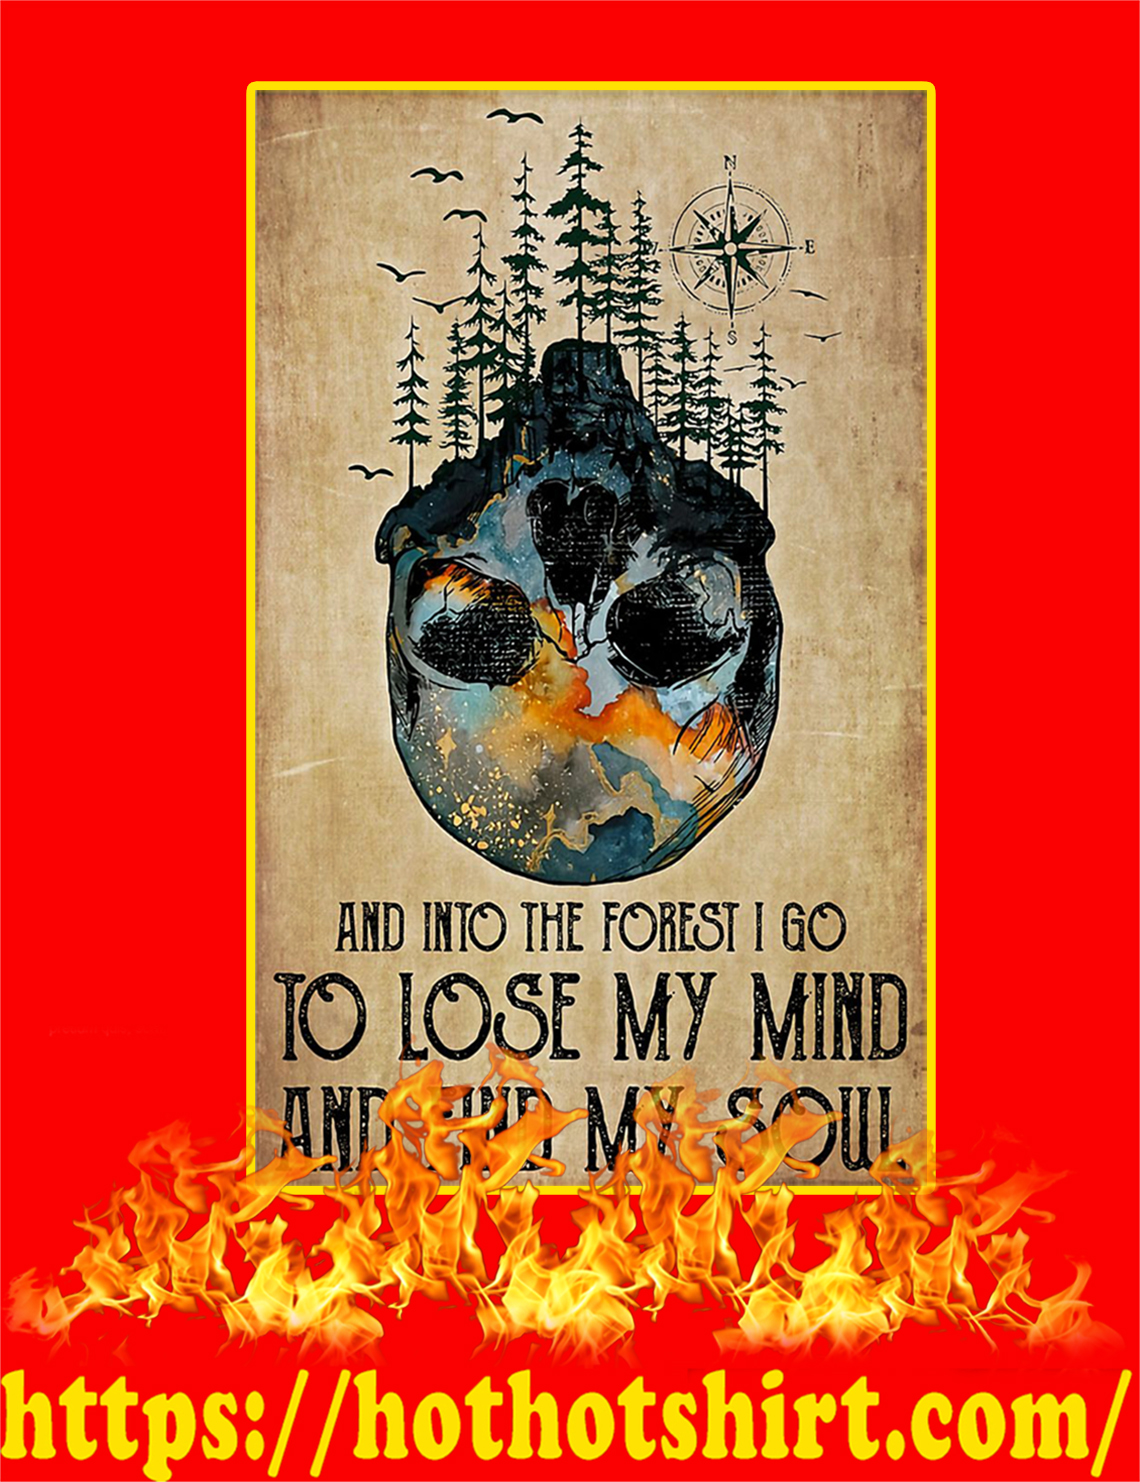 And Into The Forest I Go To Lose My Mind And Find My Soul Poster - A1